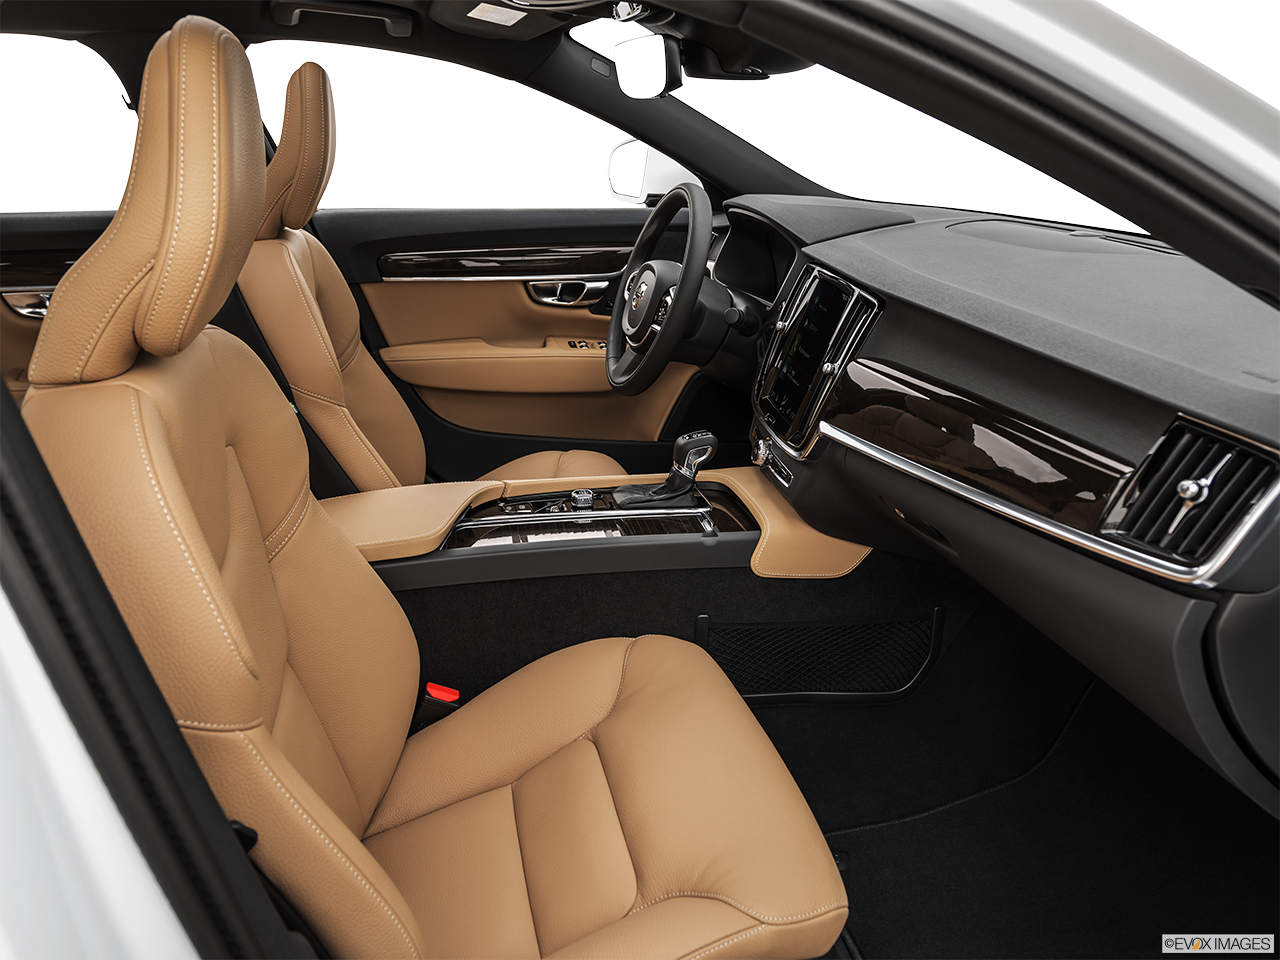 Interior view of the Volvo S90 PHEV